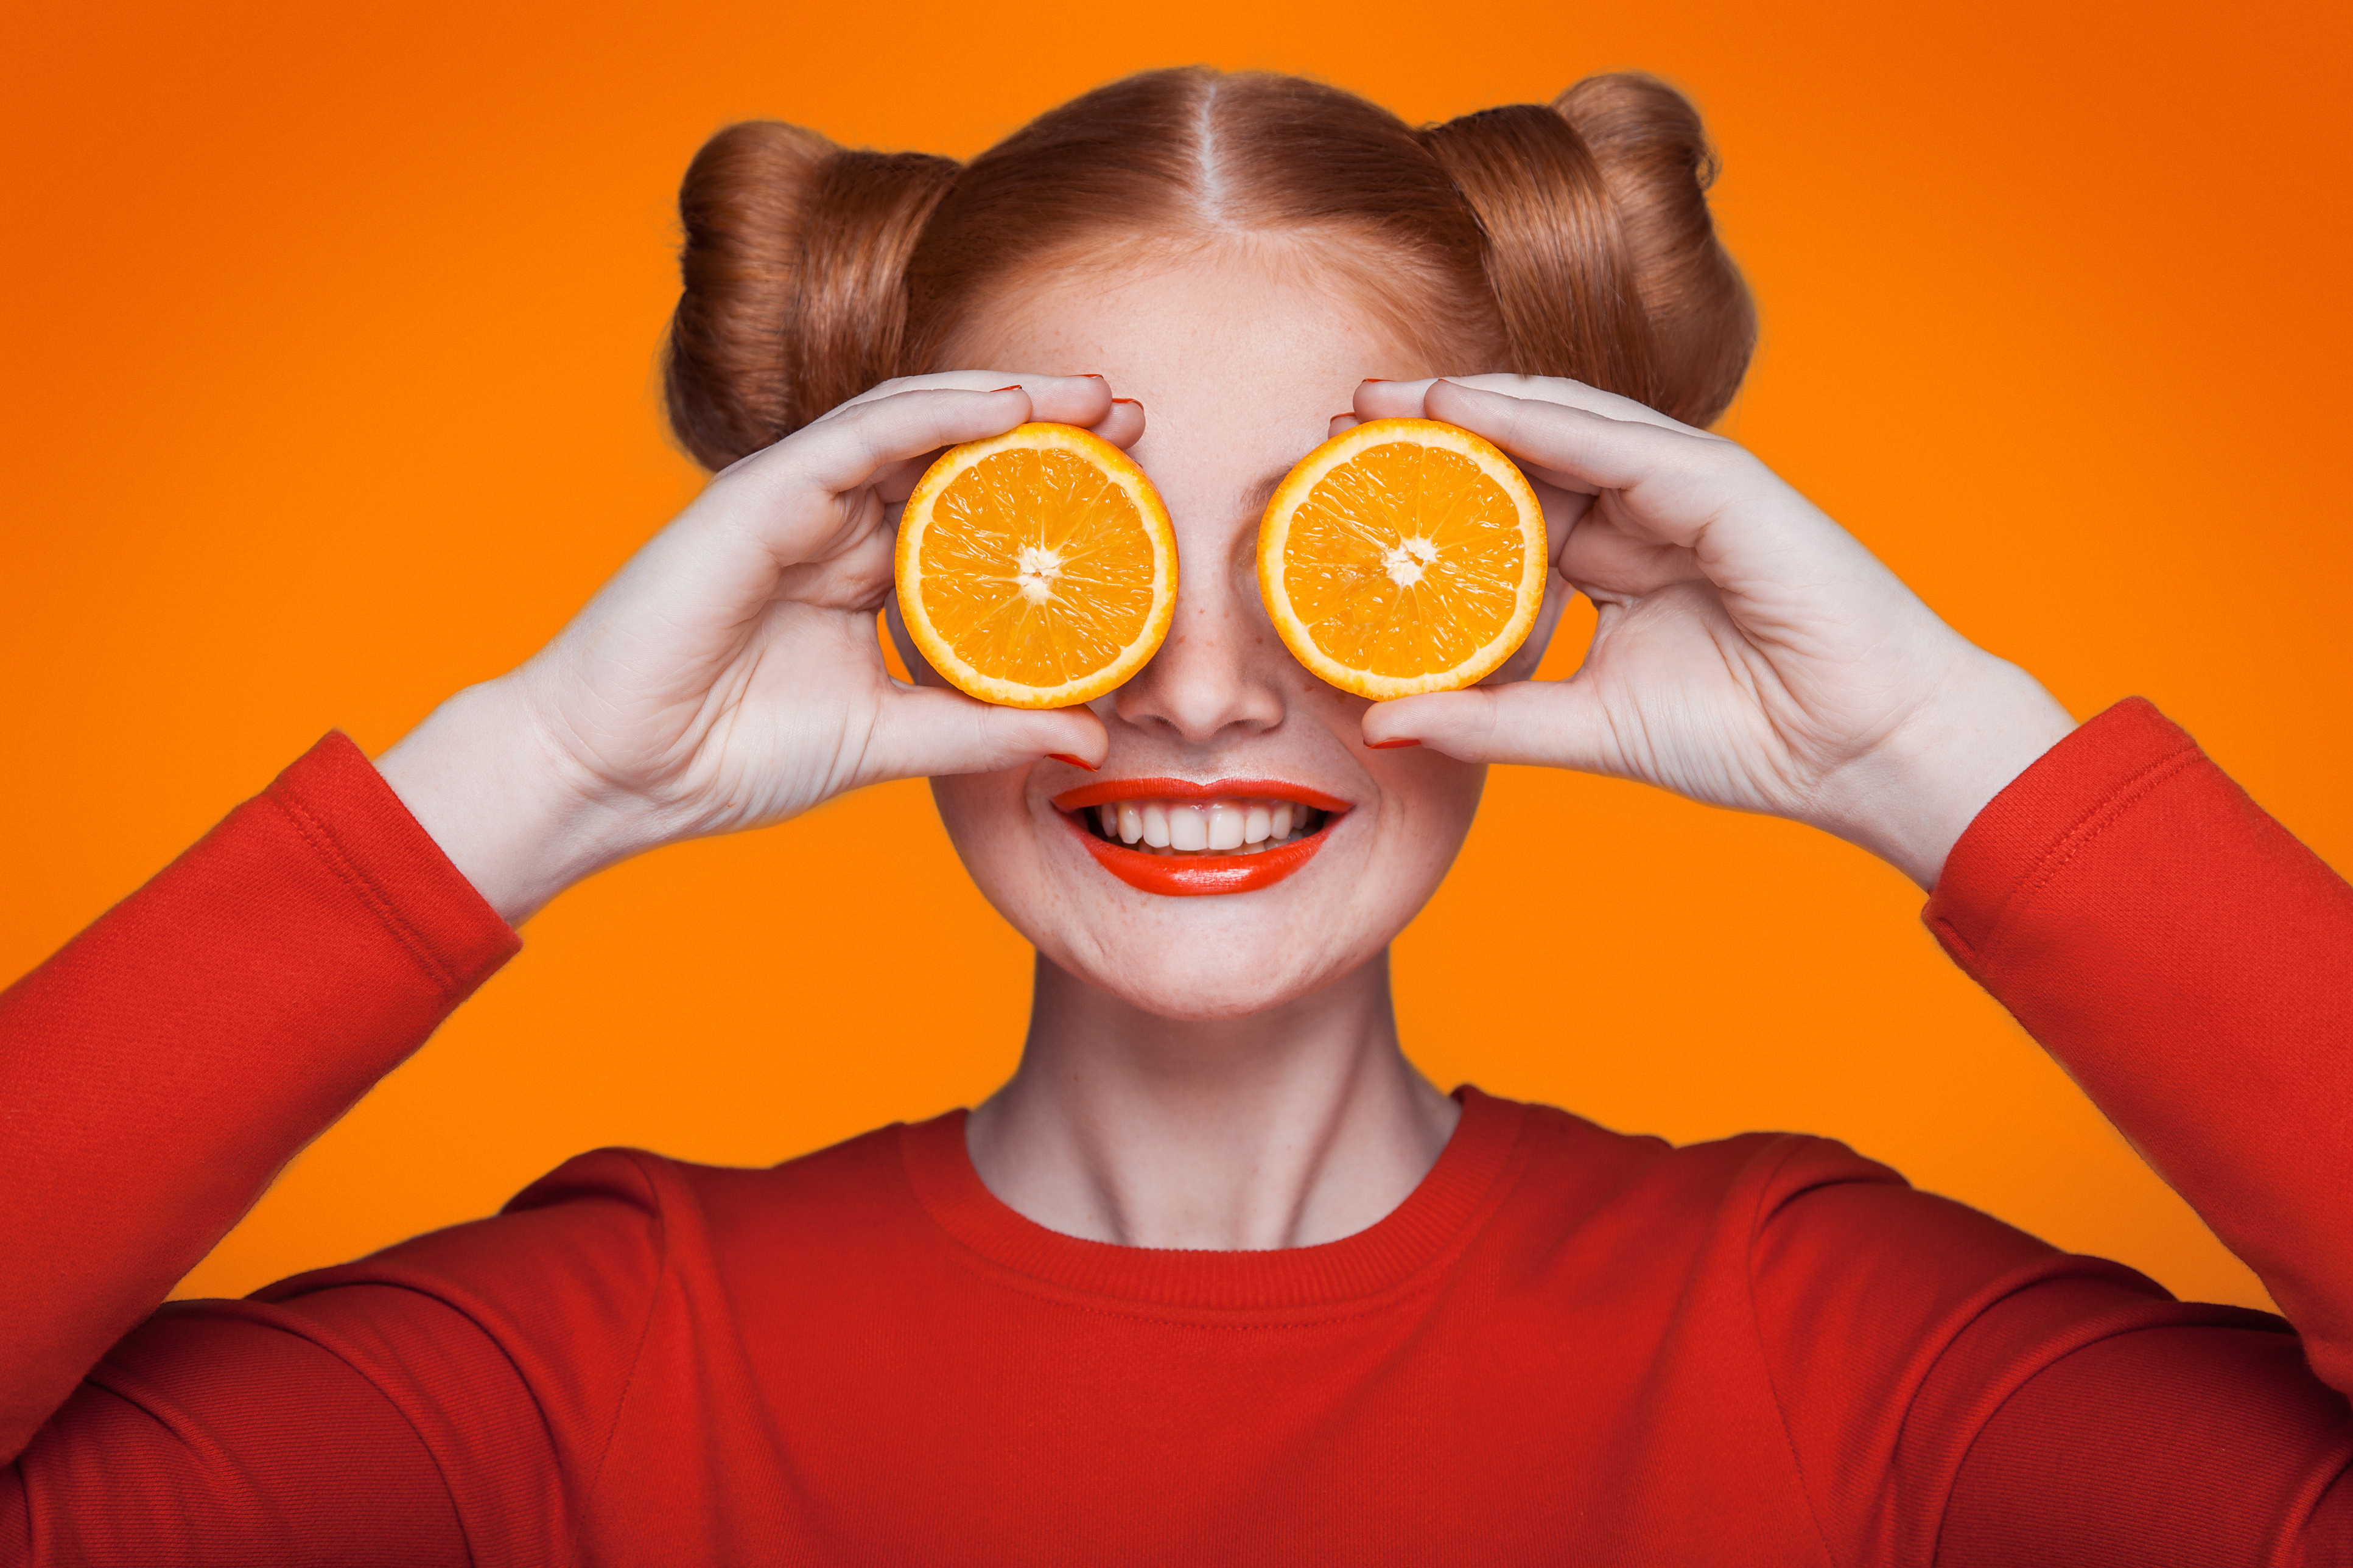 Vitamin C: The All-Star Anti-Aging Ingredient You Should Be Using